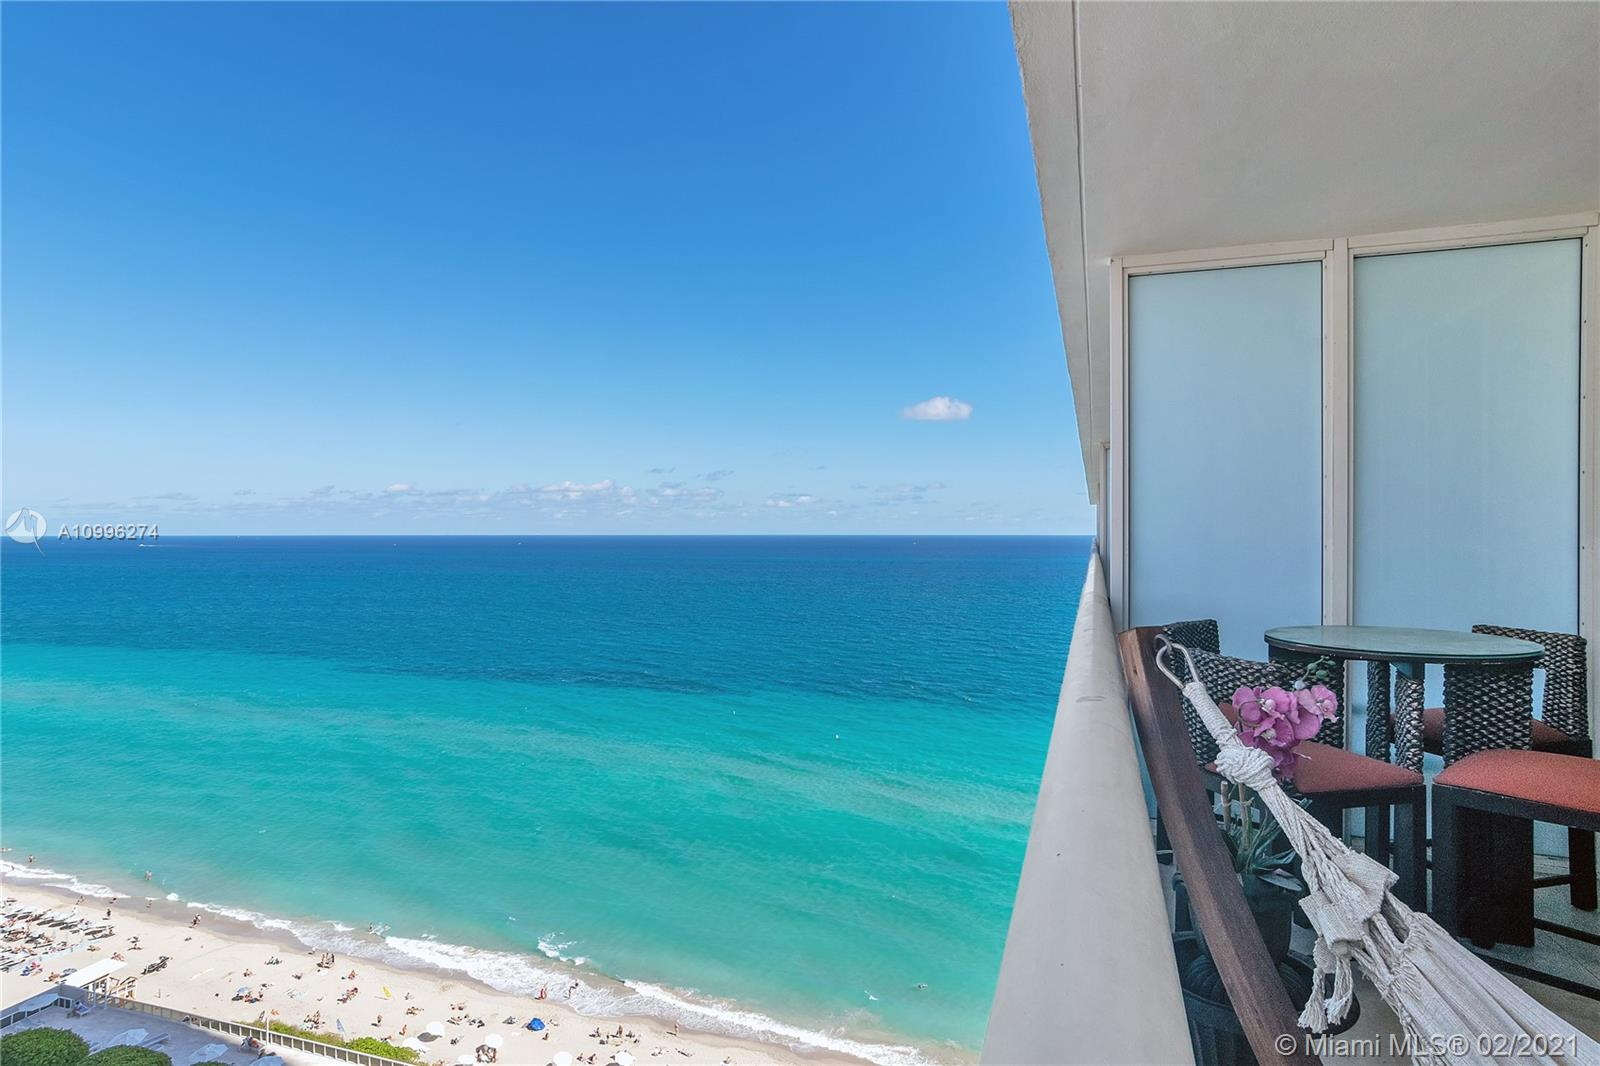 The Beach Club II, 1830 S Ocean Dr Unit 2309, Hallandale Beach, Florida 33009